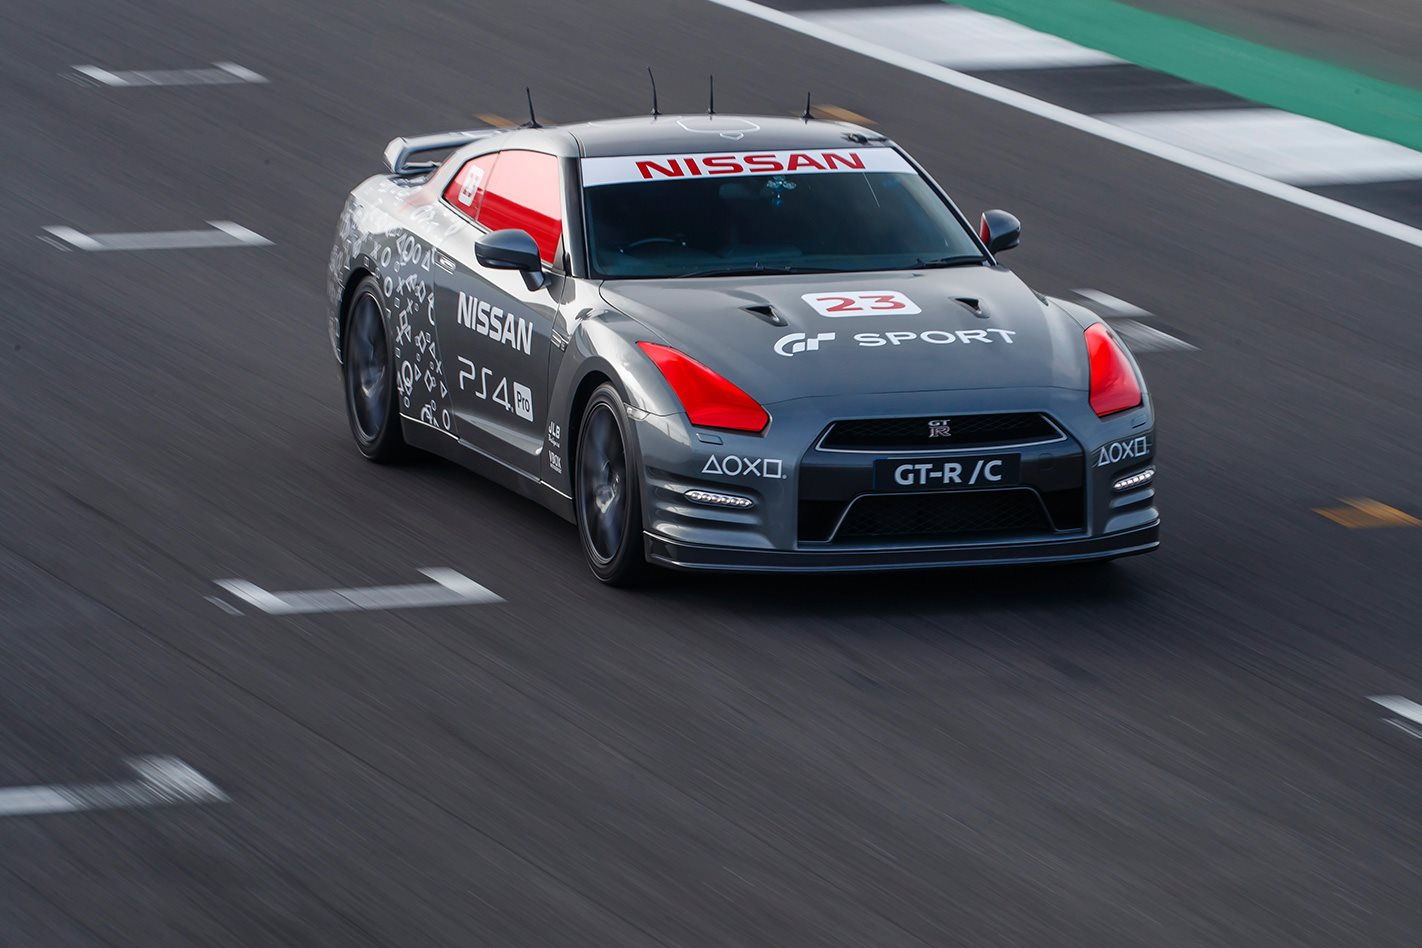 This Real-Life Nissan GT-R Is Controlled With A PlayStation Controller